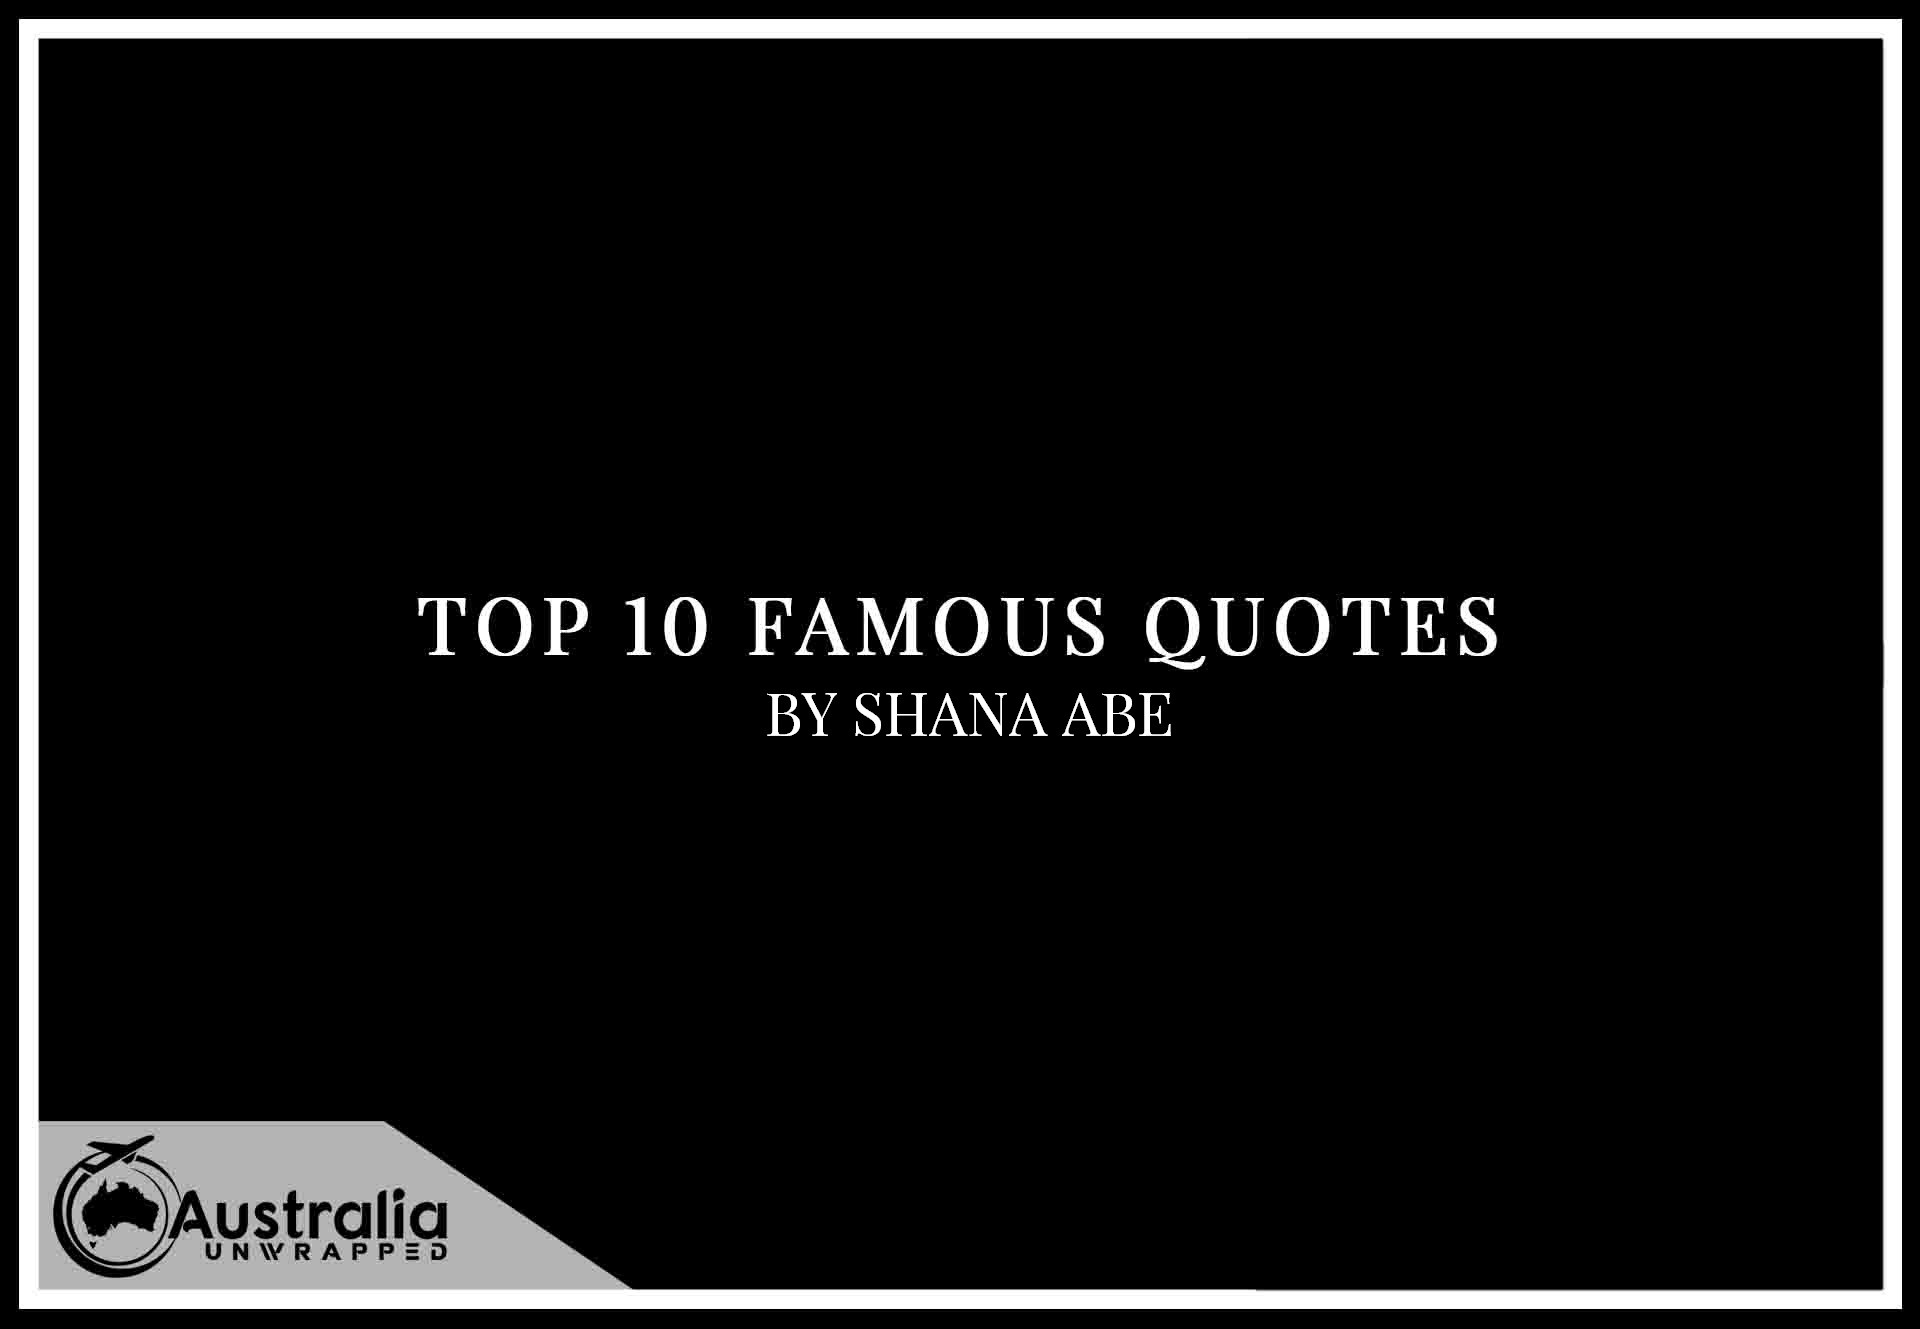 Top 10 Famous Quotes by Author Shana Abe